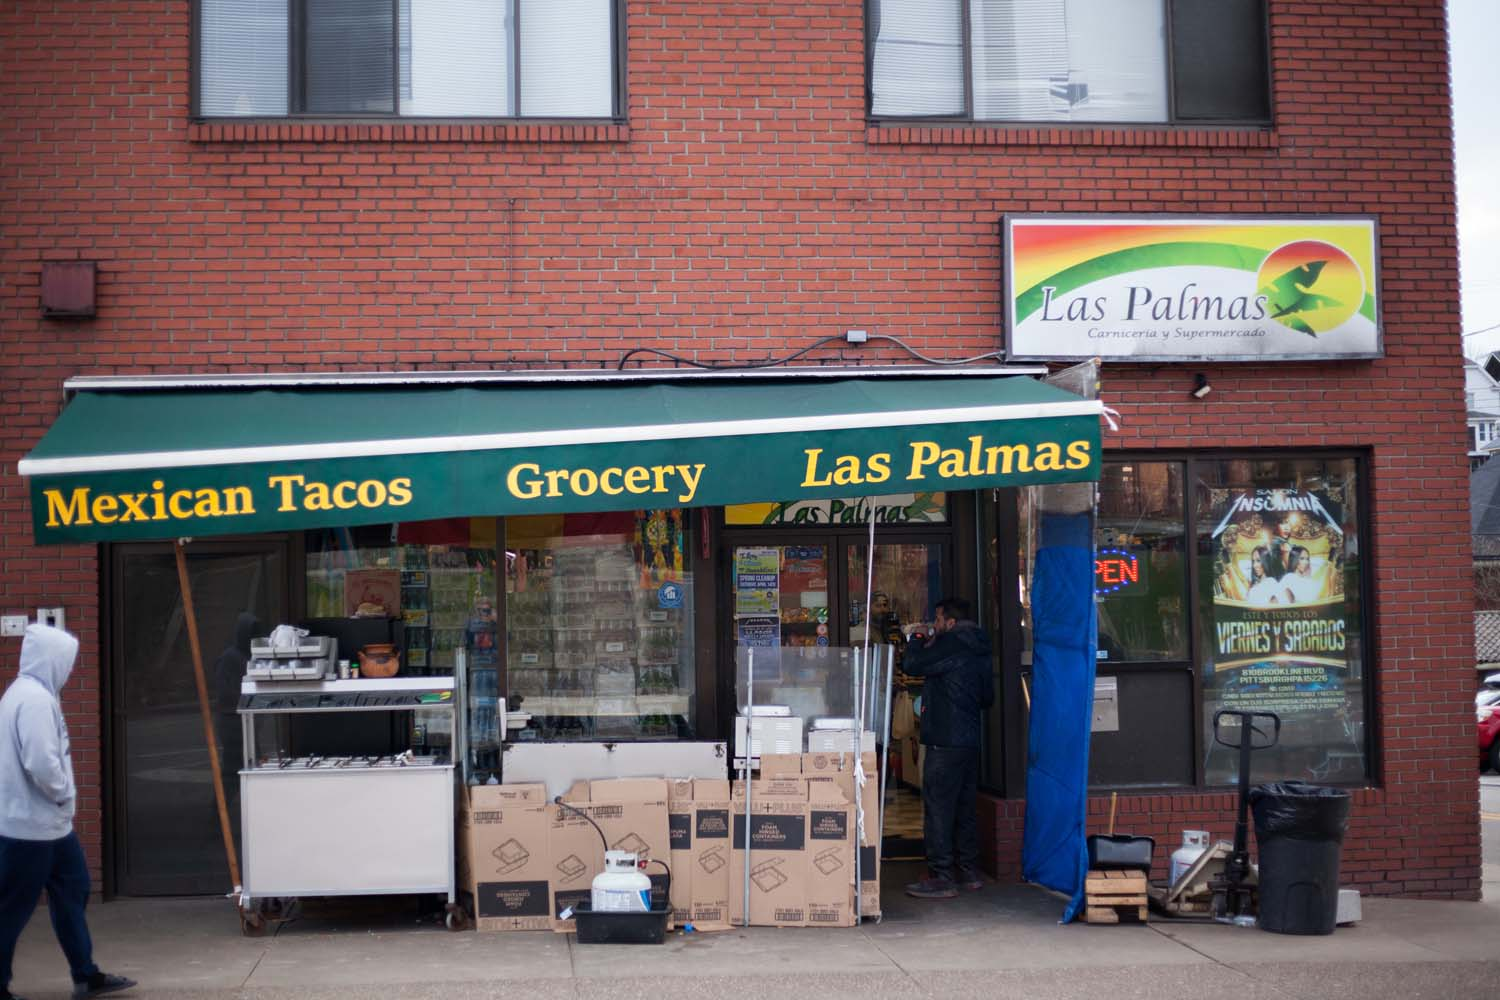 The Las Palmas restaurant received 13 health violations from the Allegheny County Health Department Thursday.